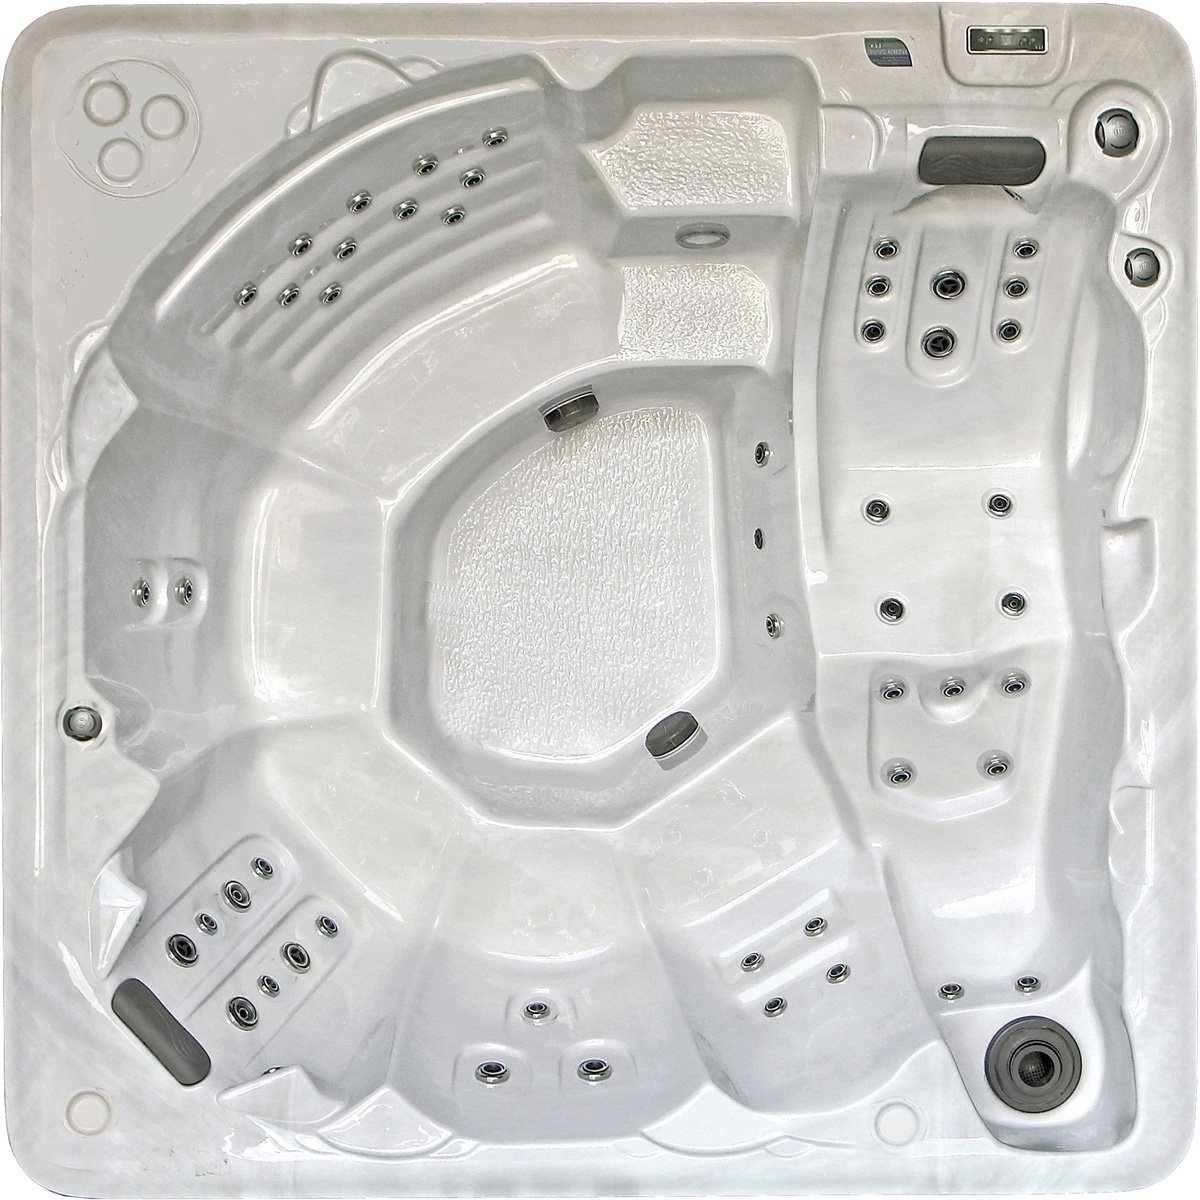 mystic 6 person hot tub